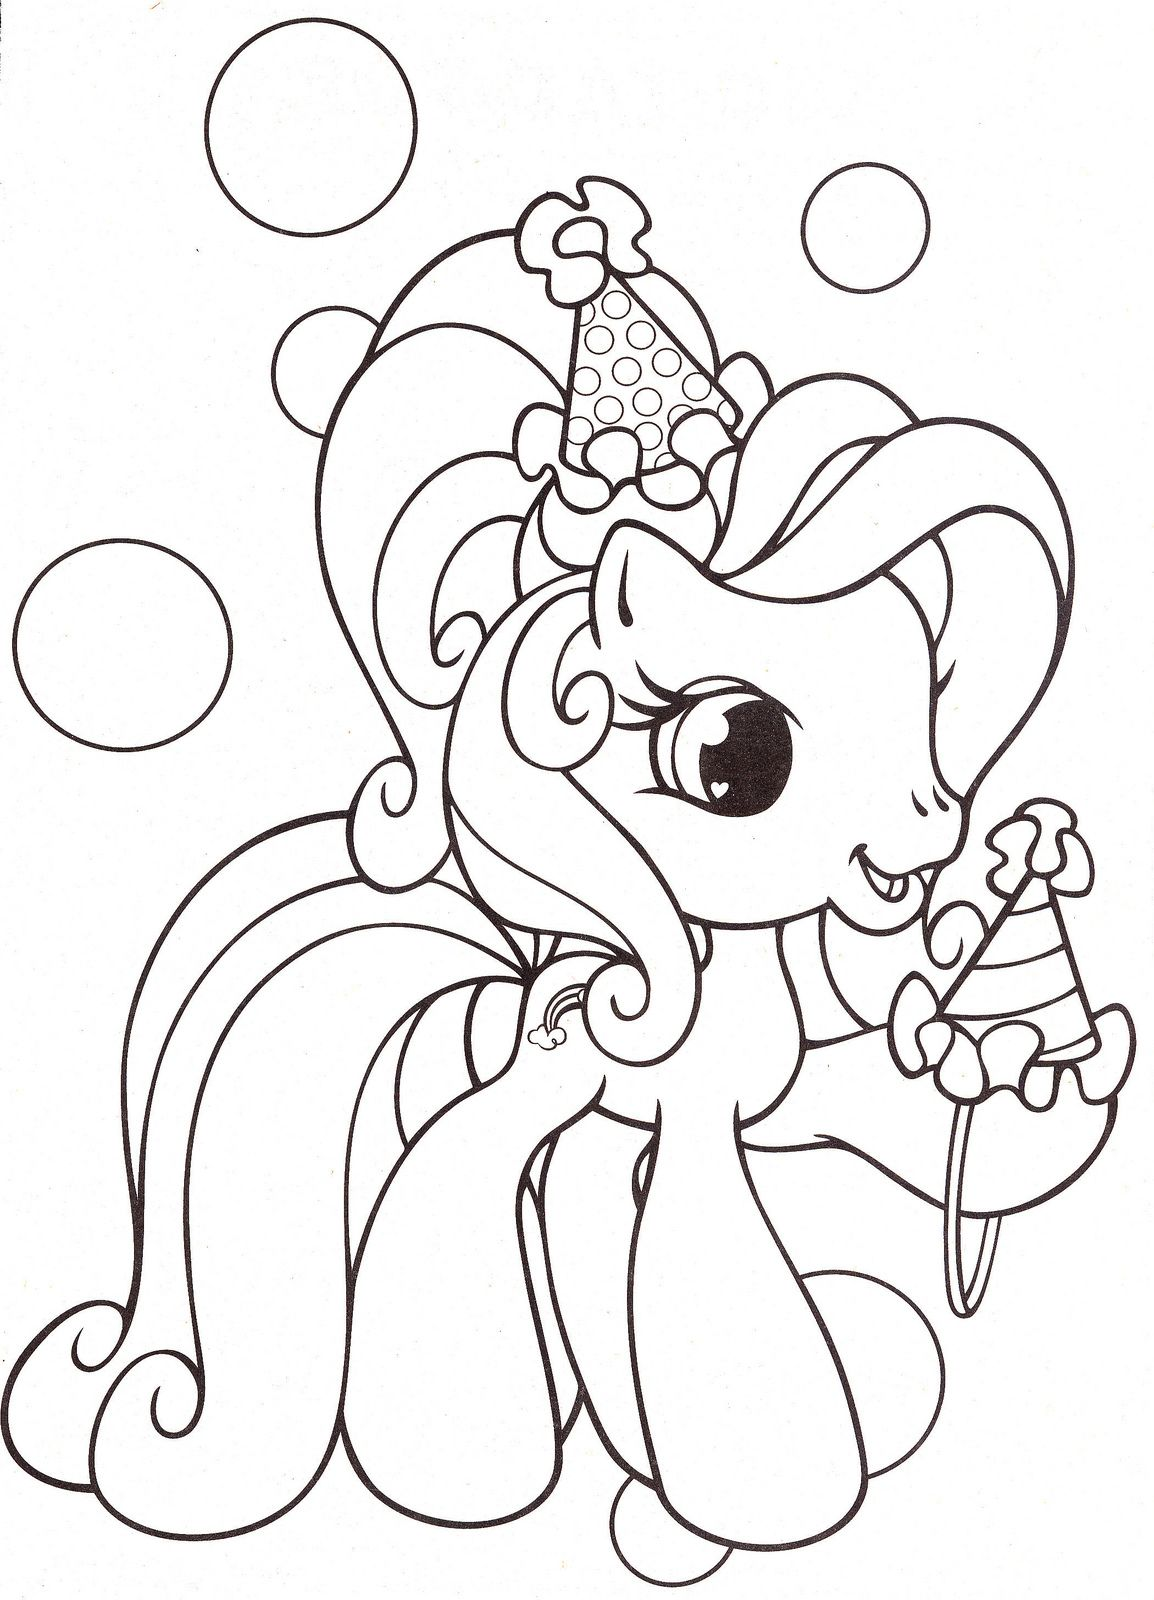 my-little-pony-coloring-pages-15 | Colorear, Dibujos para pintar y Molde